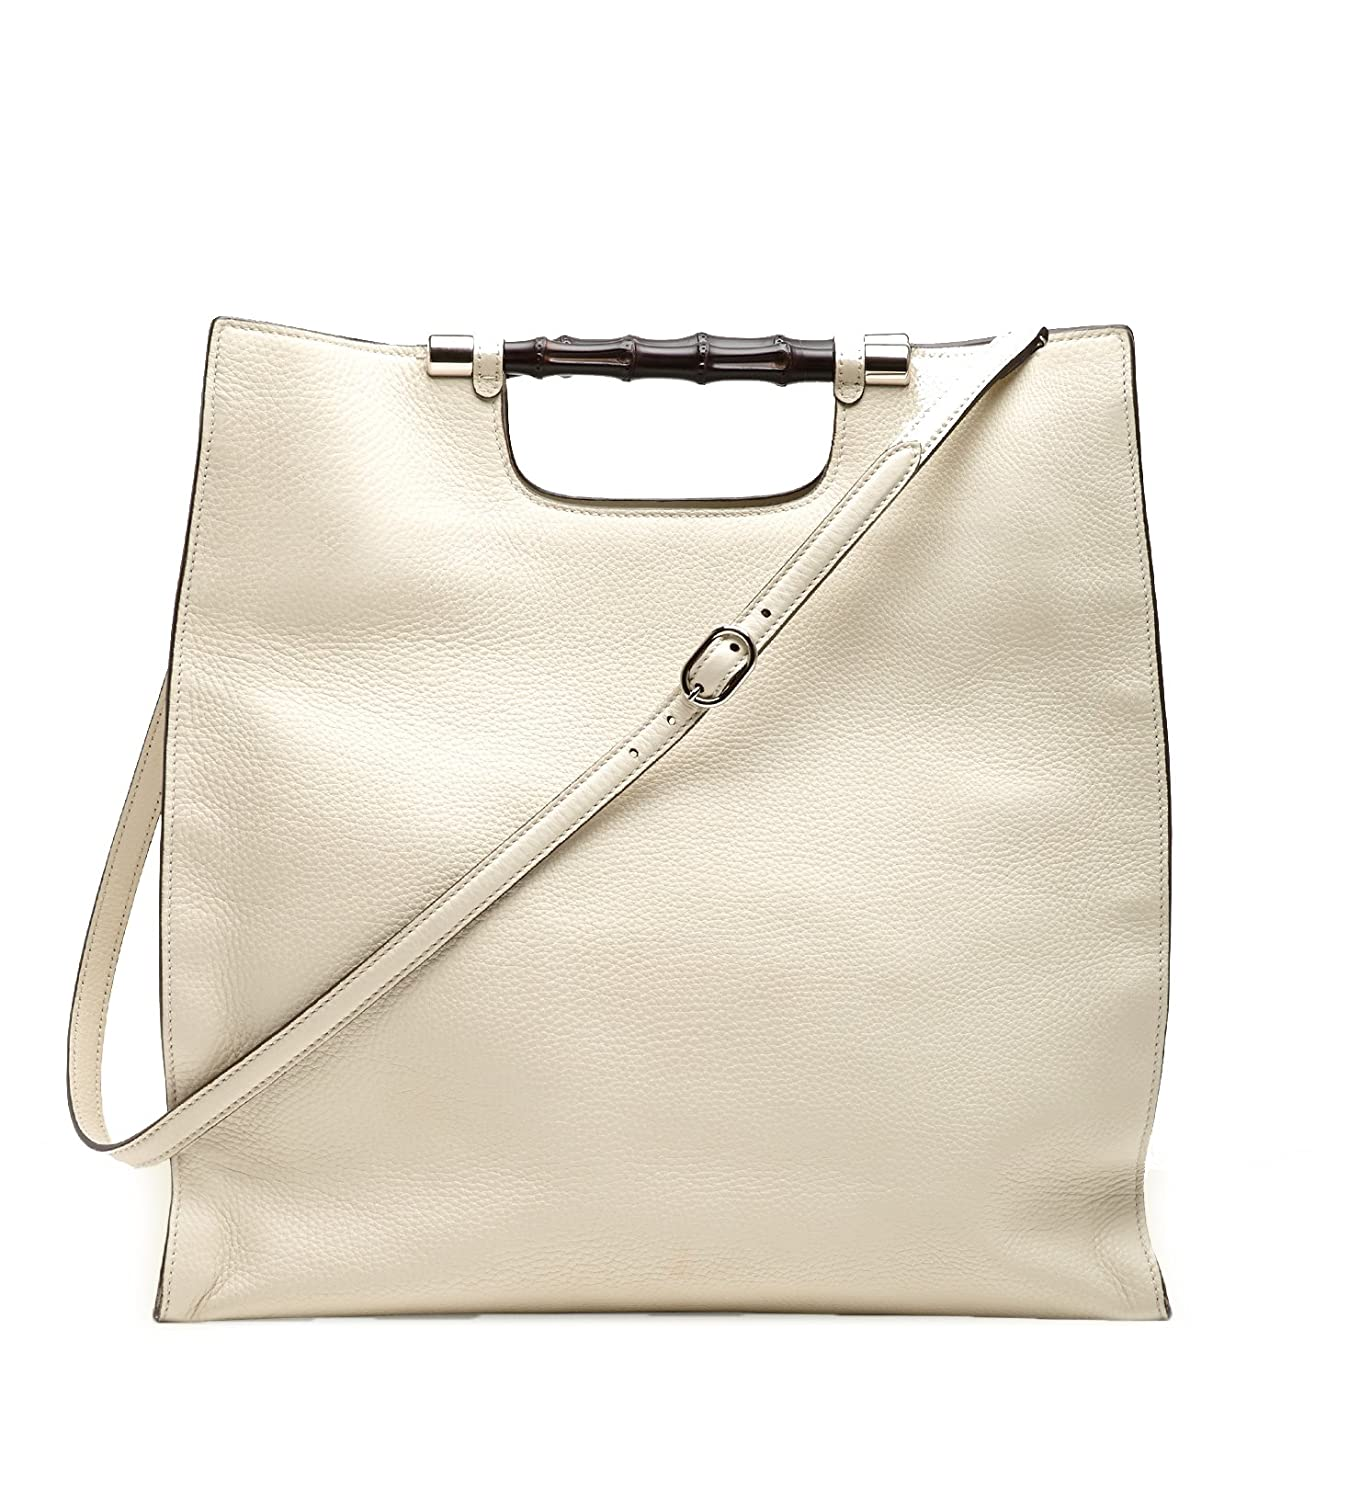 129d32b908975 Amazon.com  Gucci Bamboo Daily Leather Tote Handbag 370828 9022 (Off-White)   Shoes